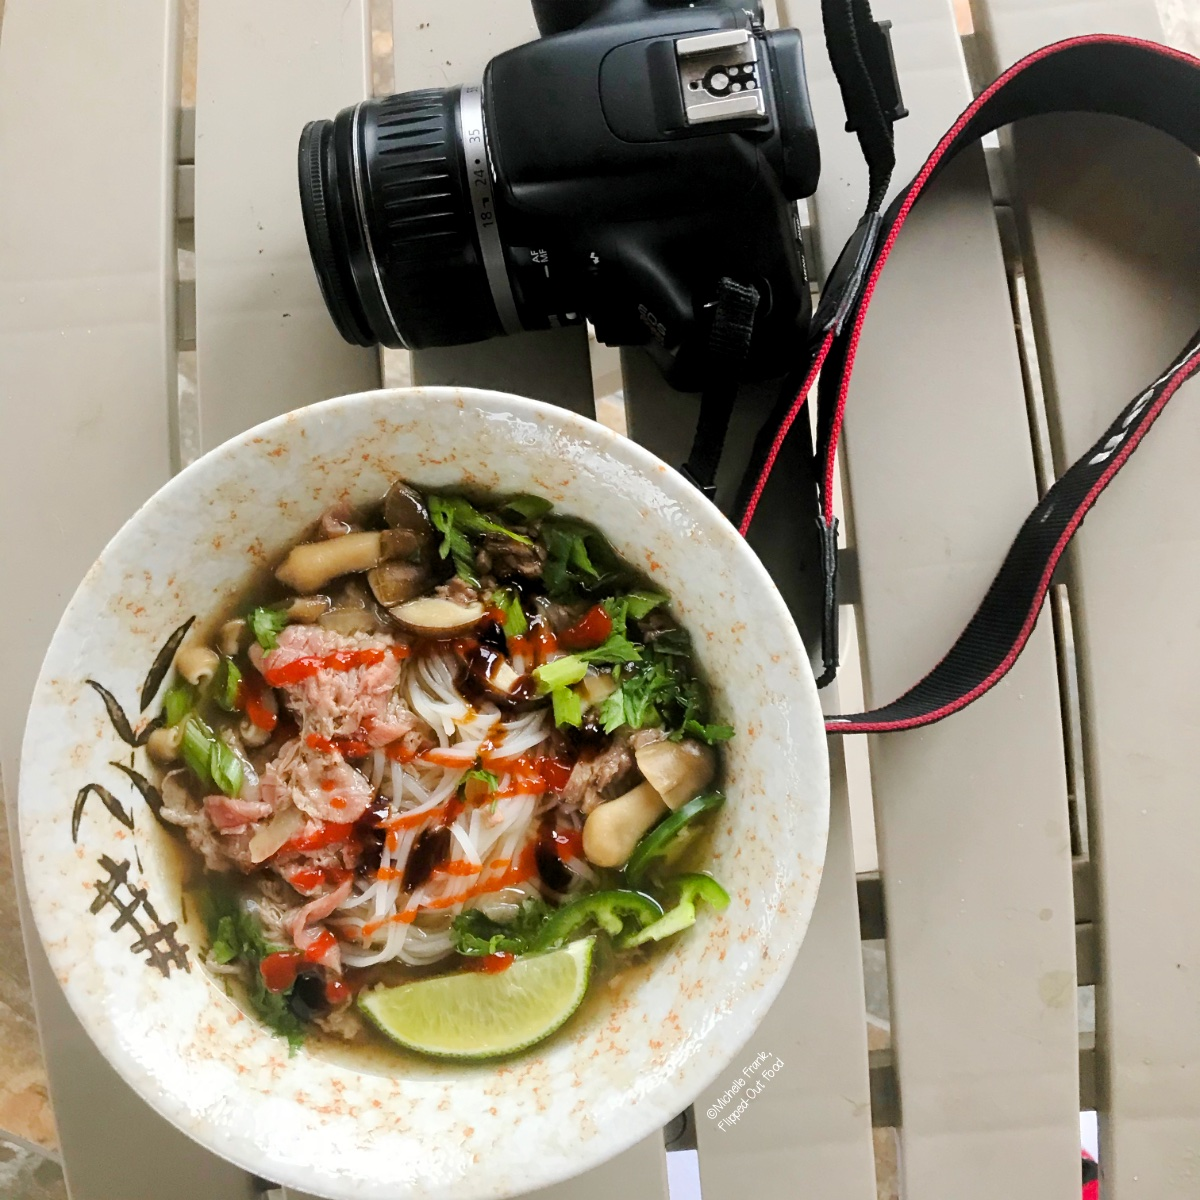 A bowl of Real Deal Beef Pho Noodle Soup sitting next to a camera.